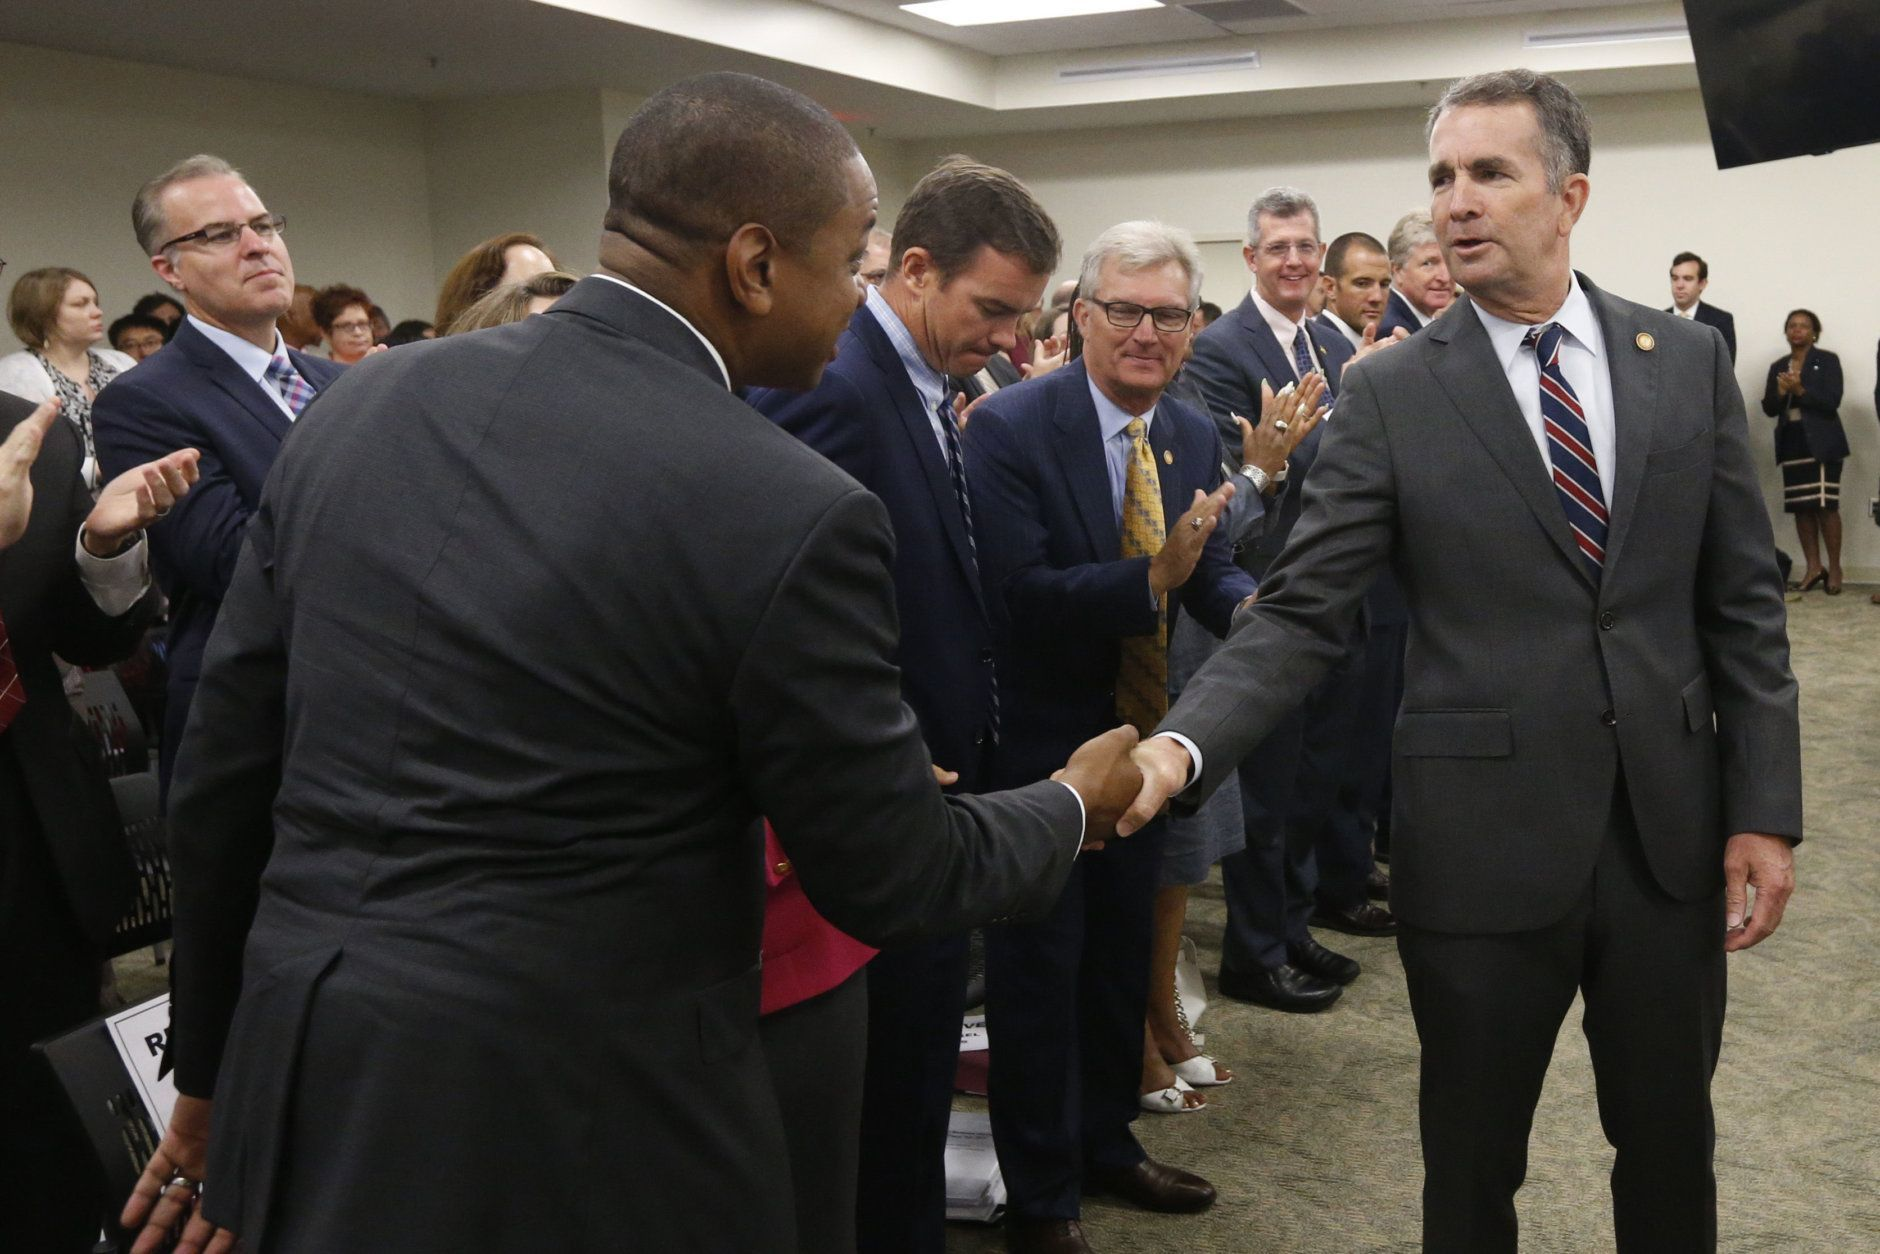 Virginia Gov. Ralph Northam, right, greets Lt. Gov. Justin Fairfax, left, as he prepares to deliver his budget update before a joint meeting of the House and Senate money committees at the Capitol in Richmond, Va., Tuesday, Aug. 20, 2019. (AP Photo/Steve Helber)